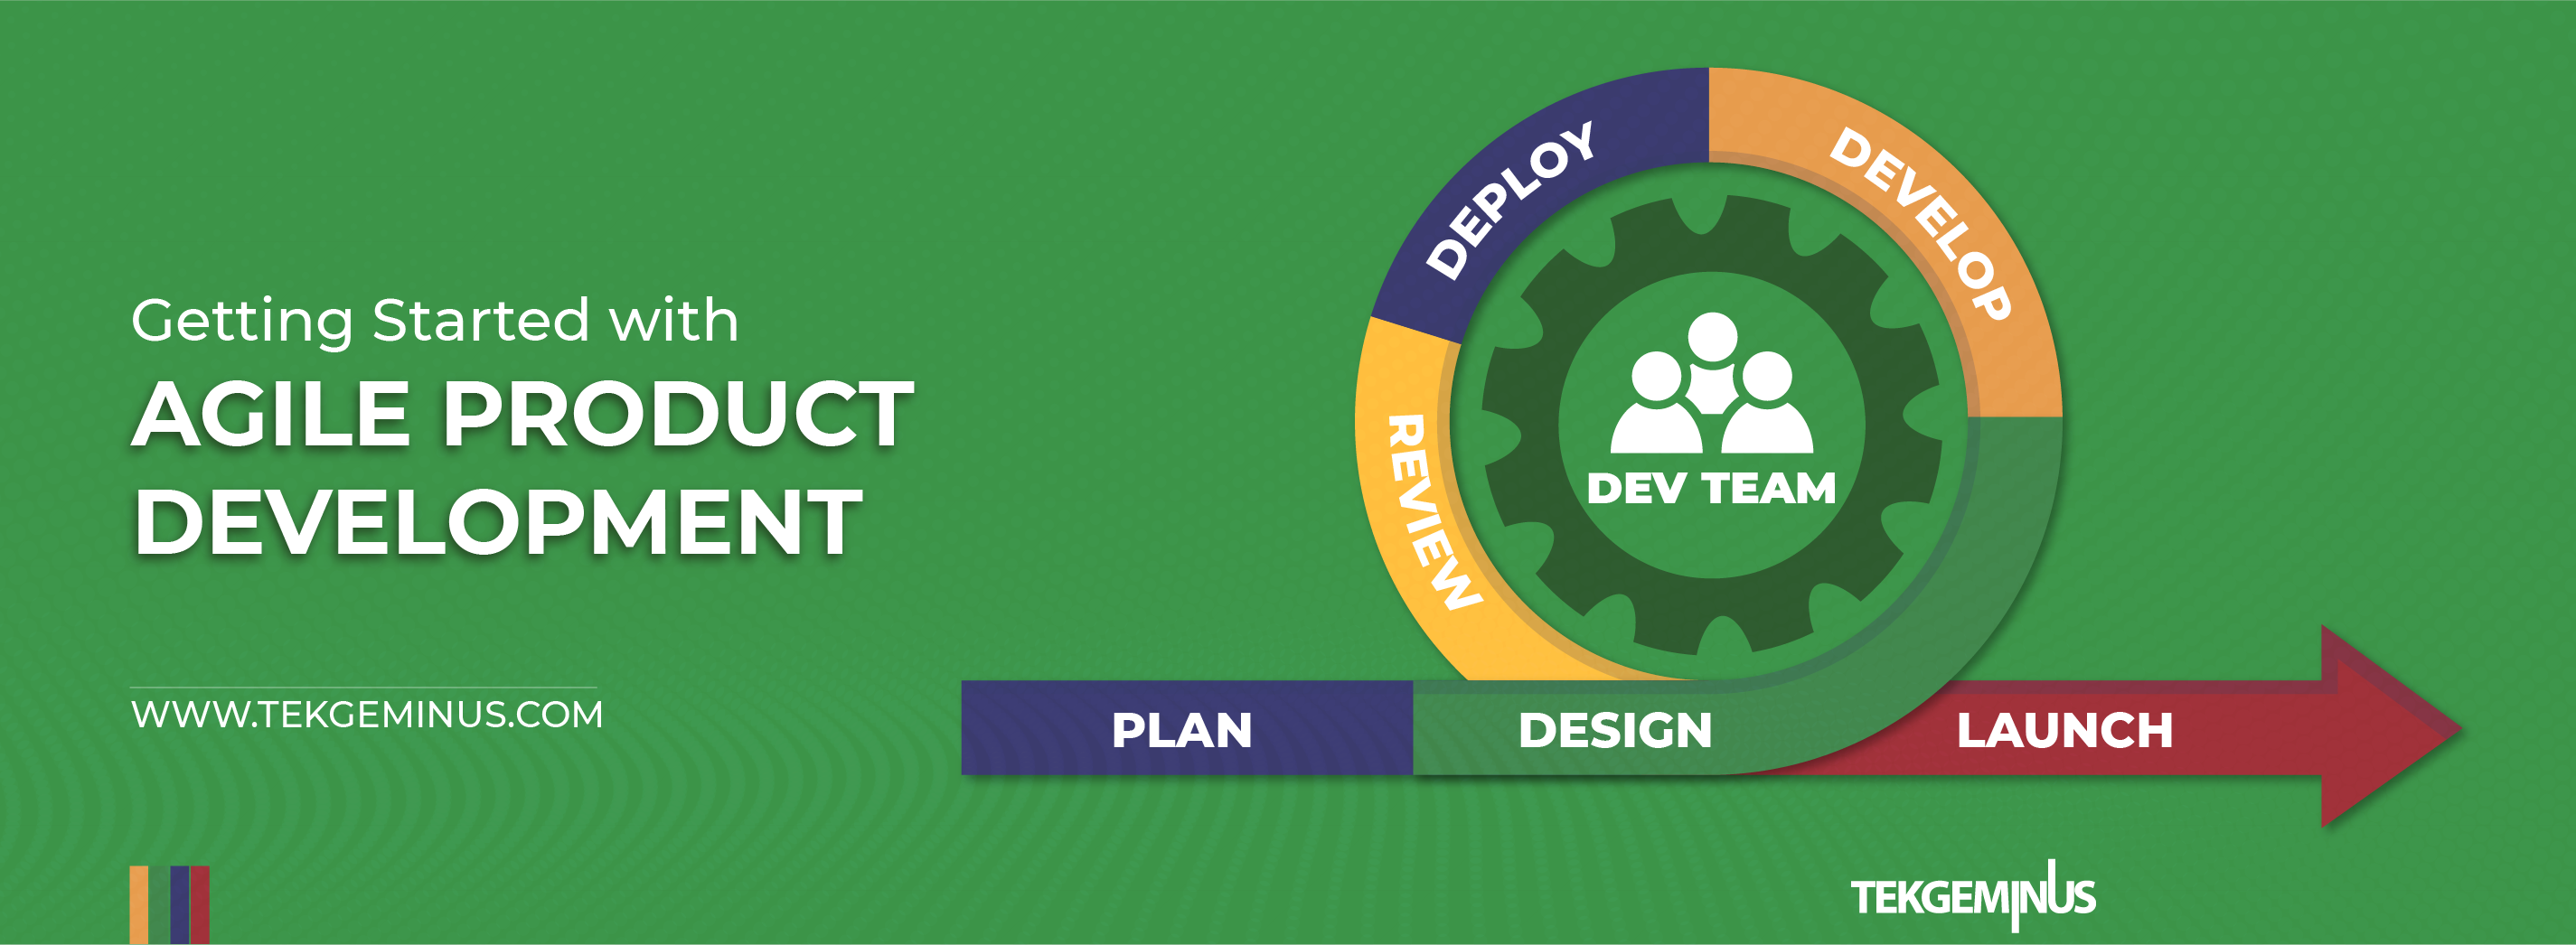 Getting Started with Agile Product Development